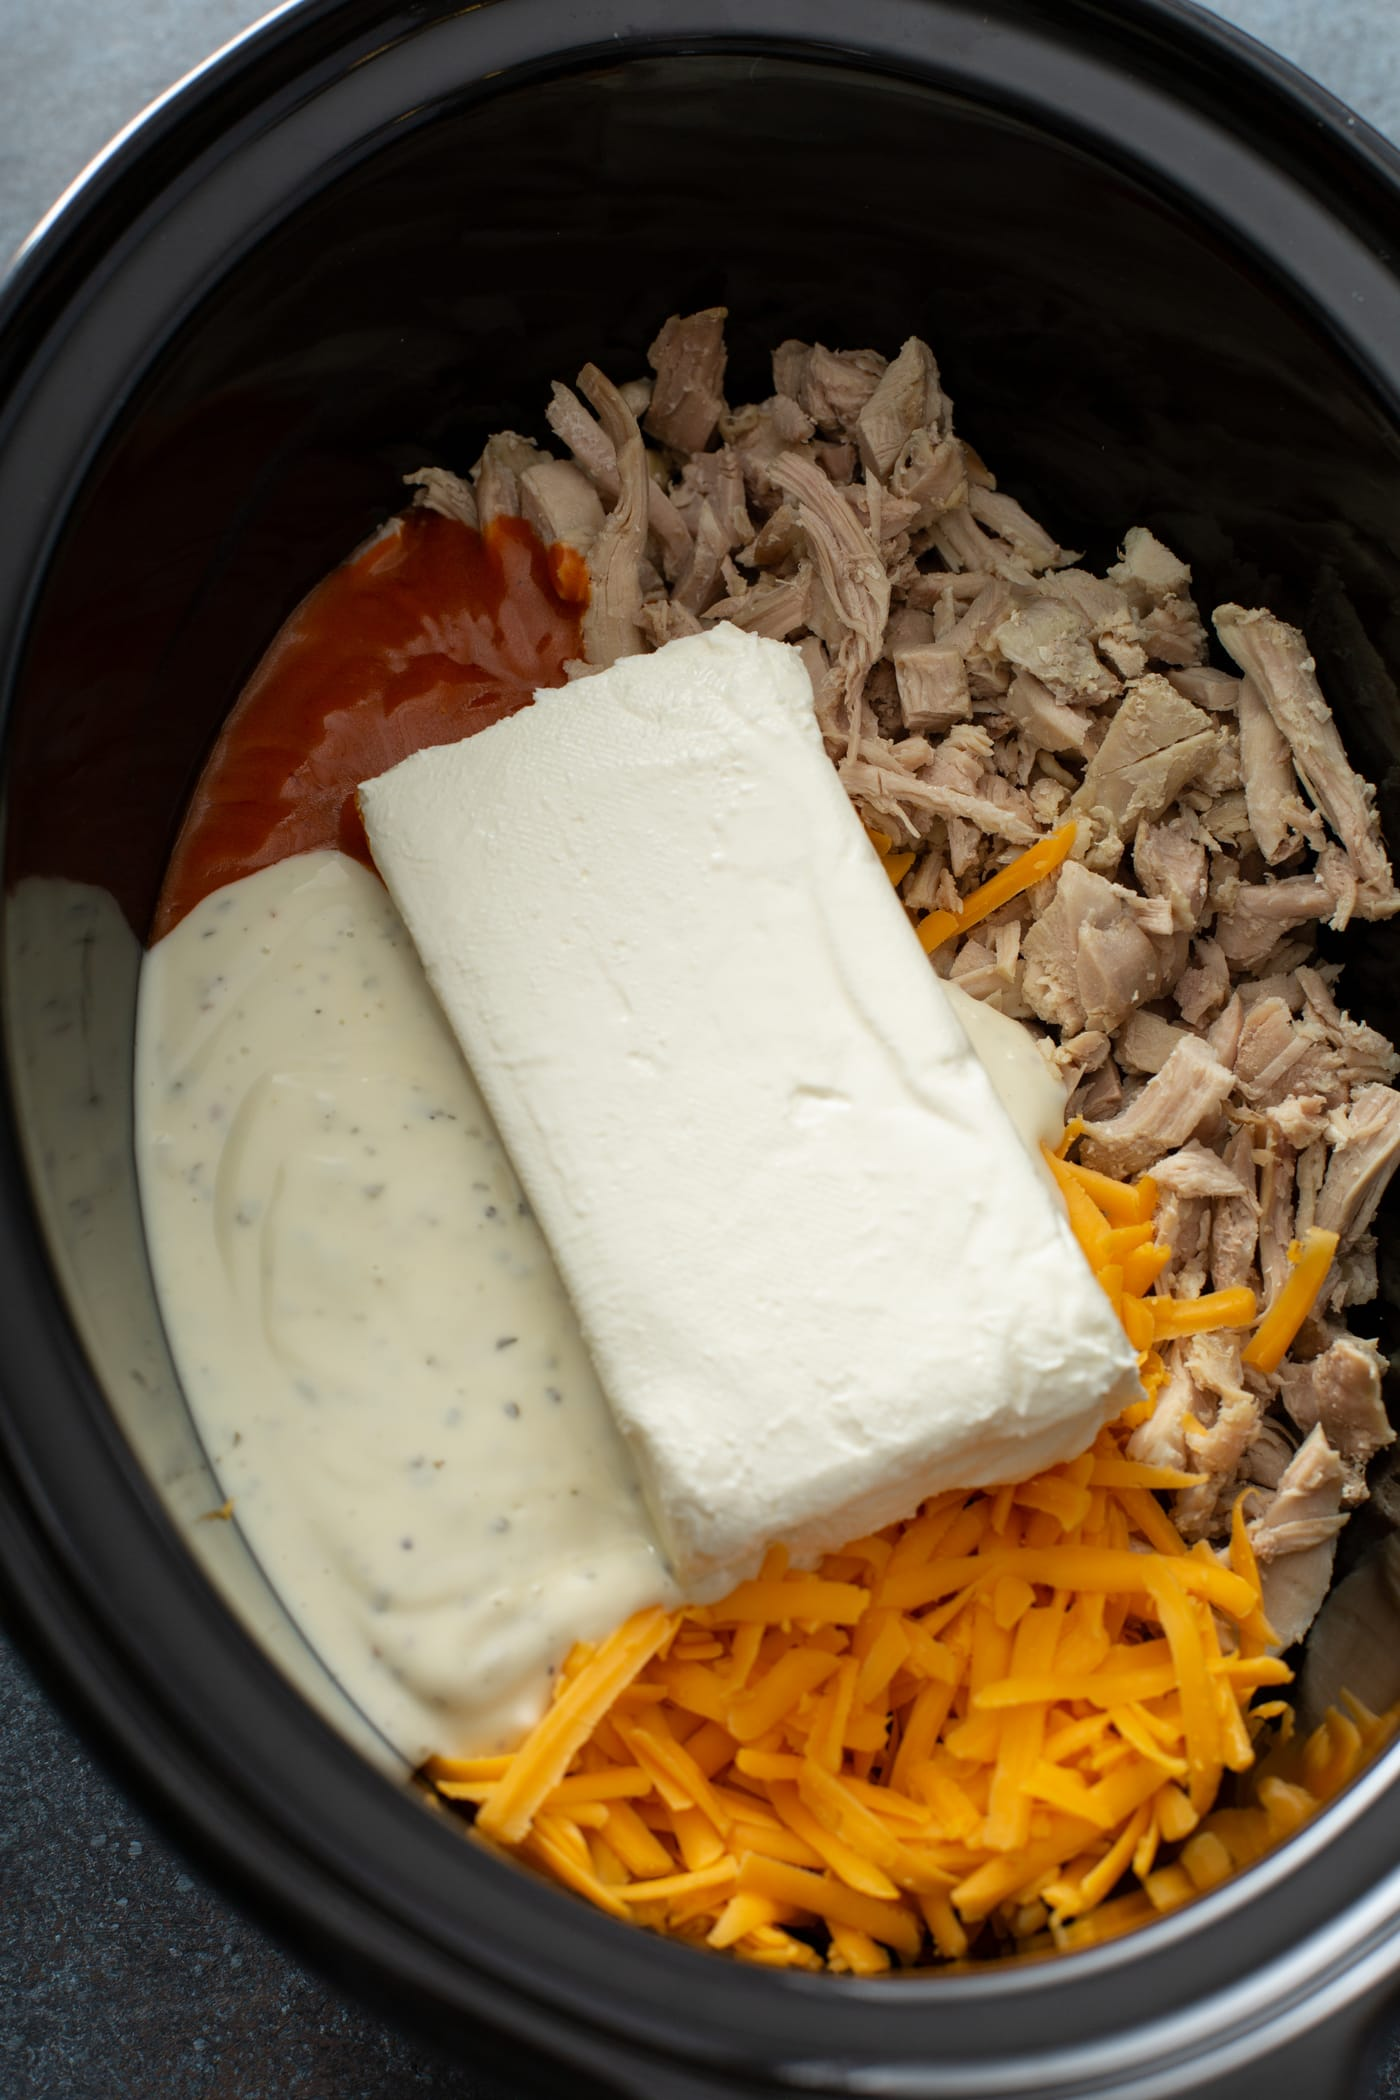 A slow cooker containing shredded chicken, cheese, cream cheese, ranch dressing and buffalo sauce.